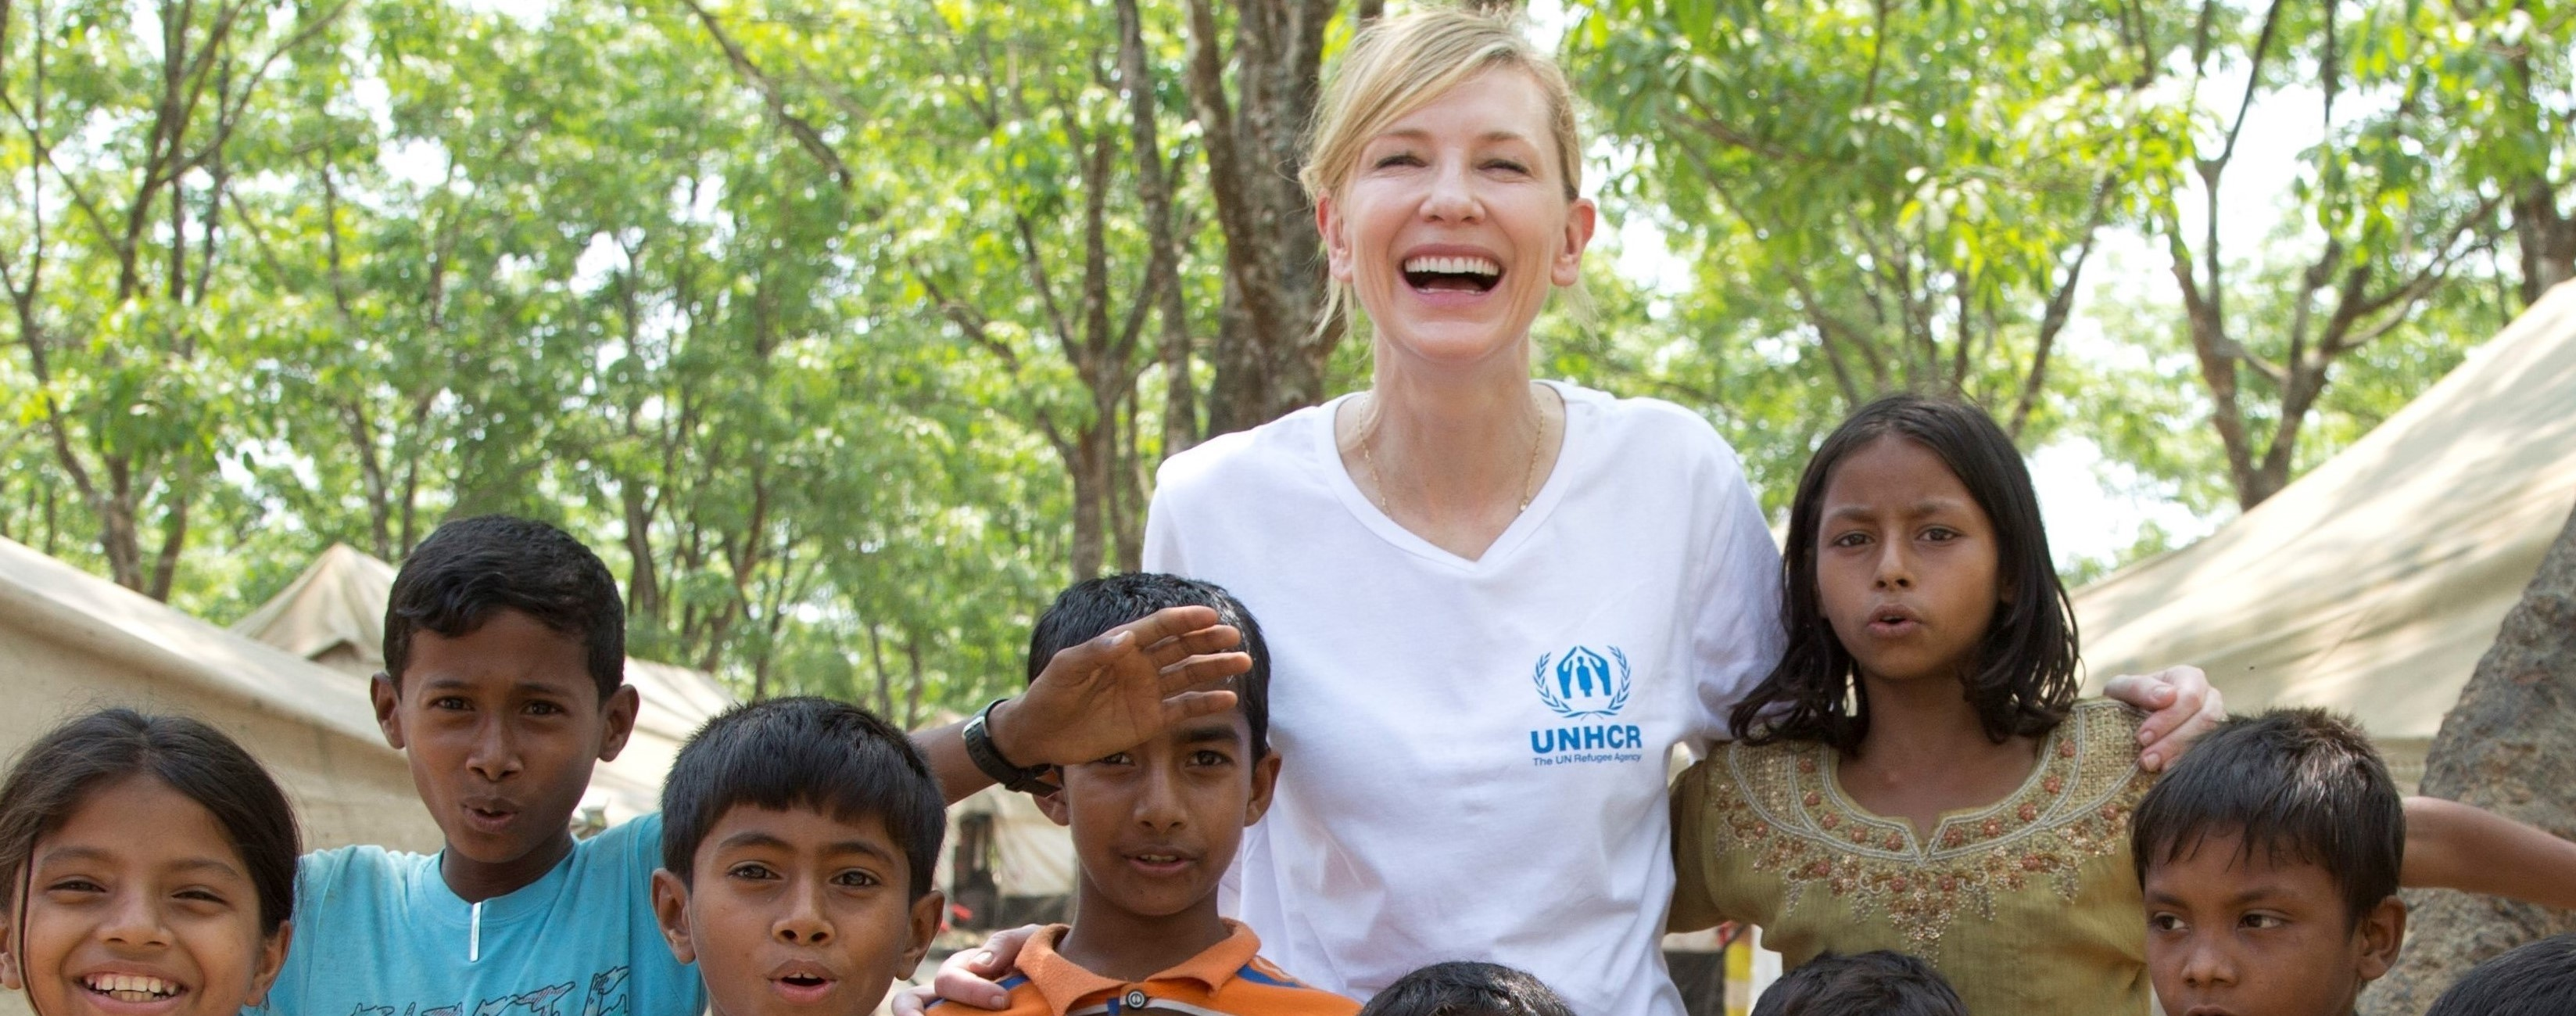 UNHCR Goodwill Ambassador Cate Blanchett calls for solidarity and support with Refugees